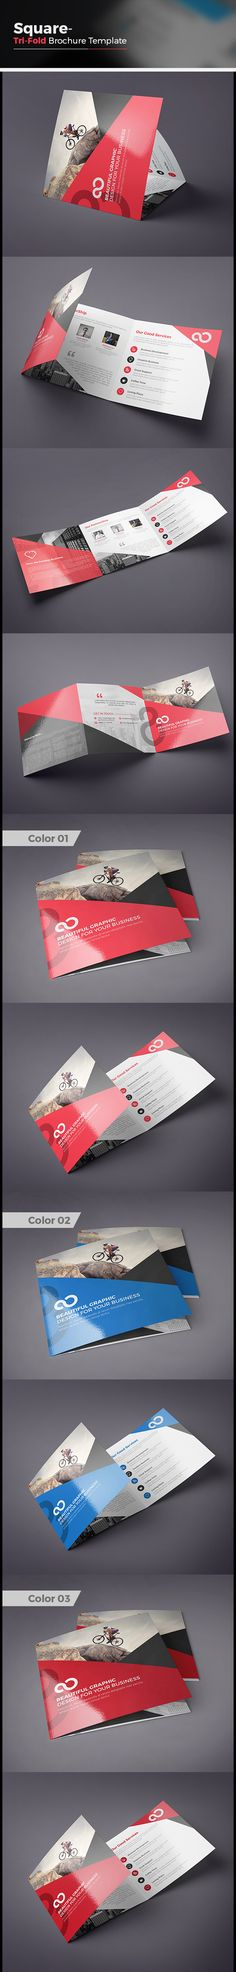 Trifold Brochure Brochures, Brochure template and Graphics - technology brochure template